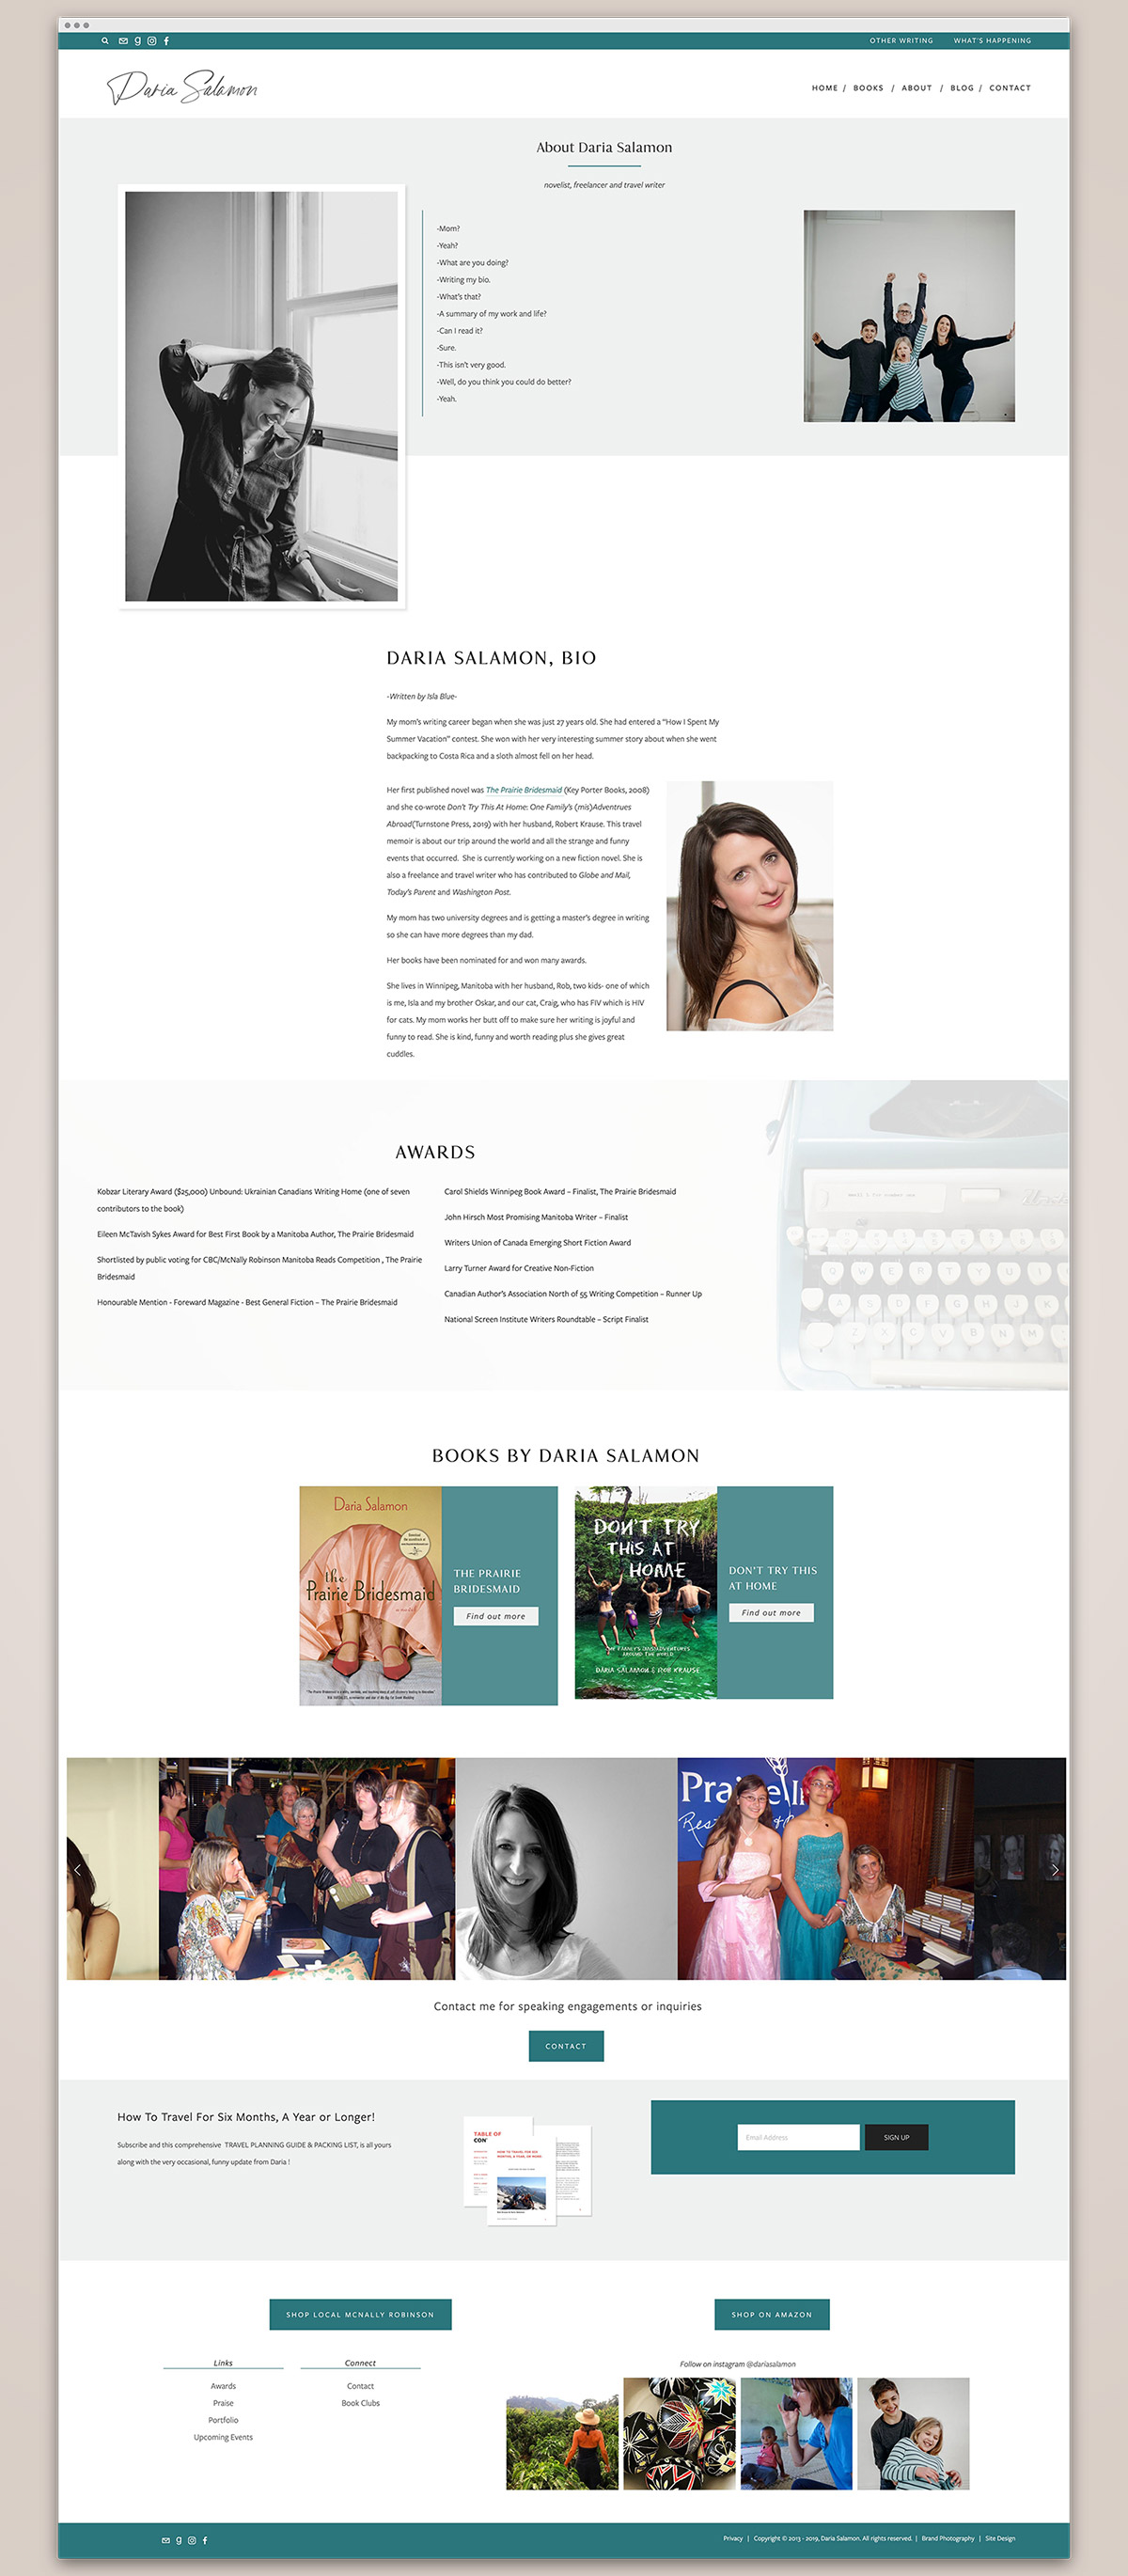 Daria Salamon About page | freelance writer website design by Jodi Neufeld Design